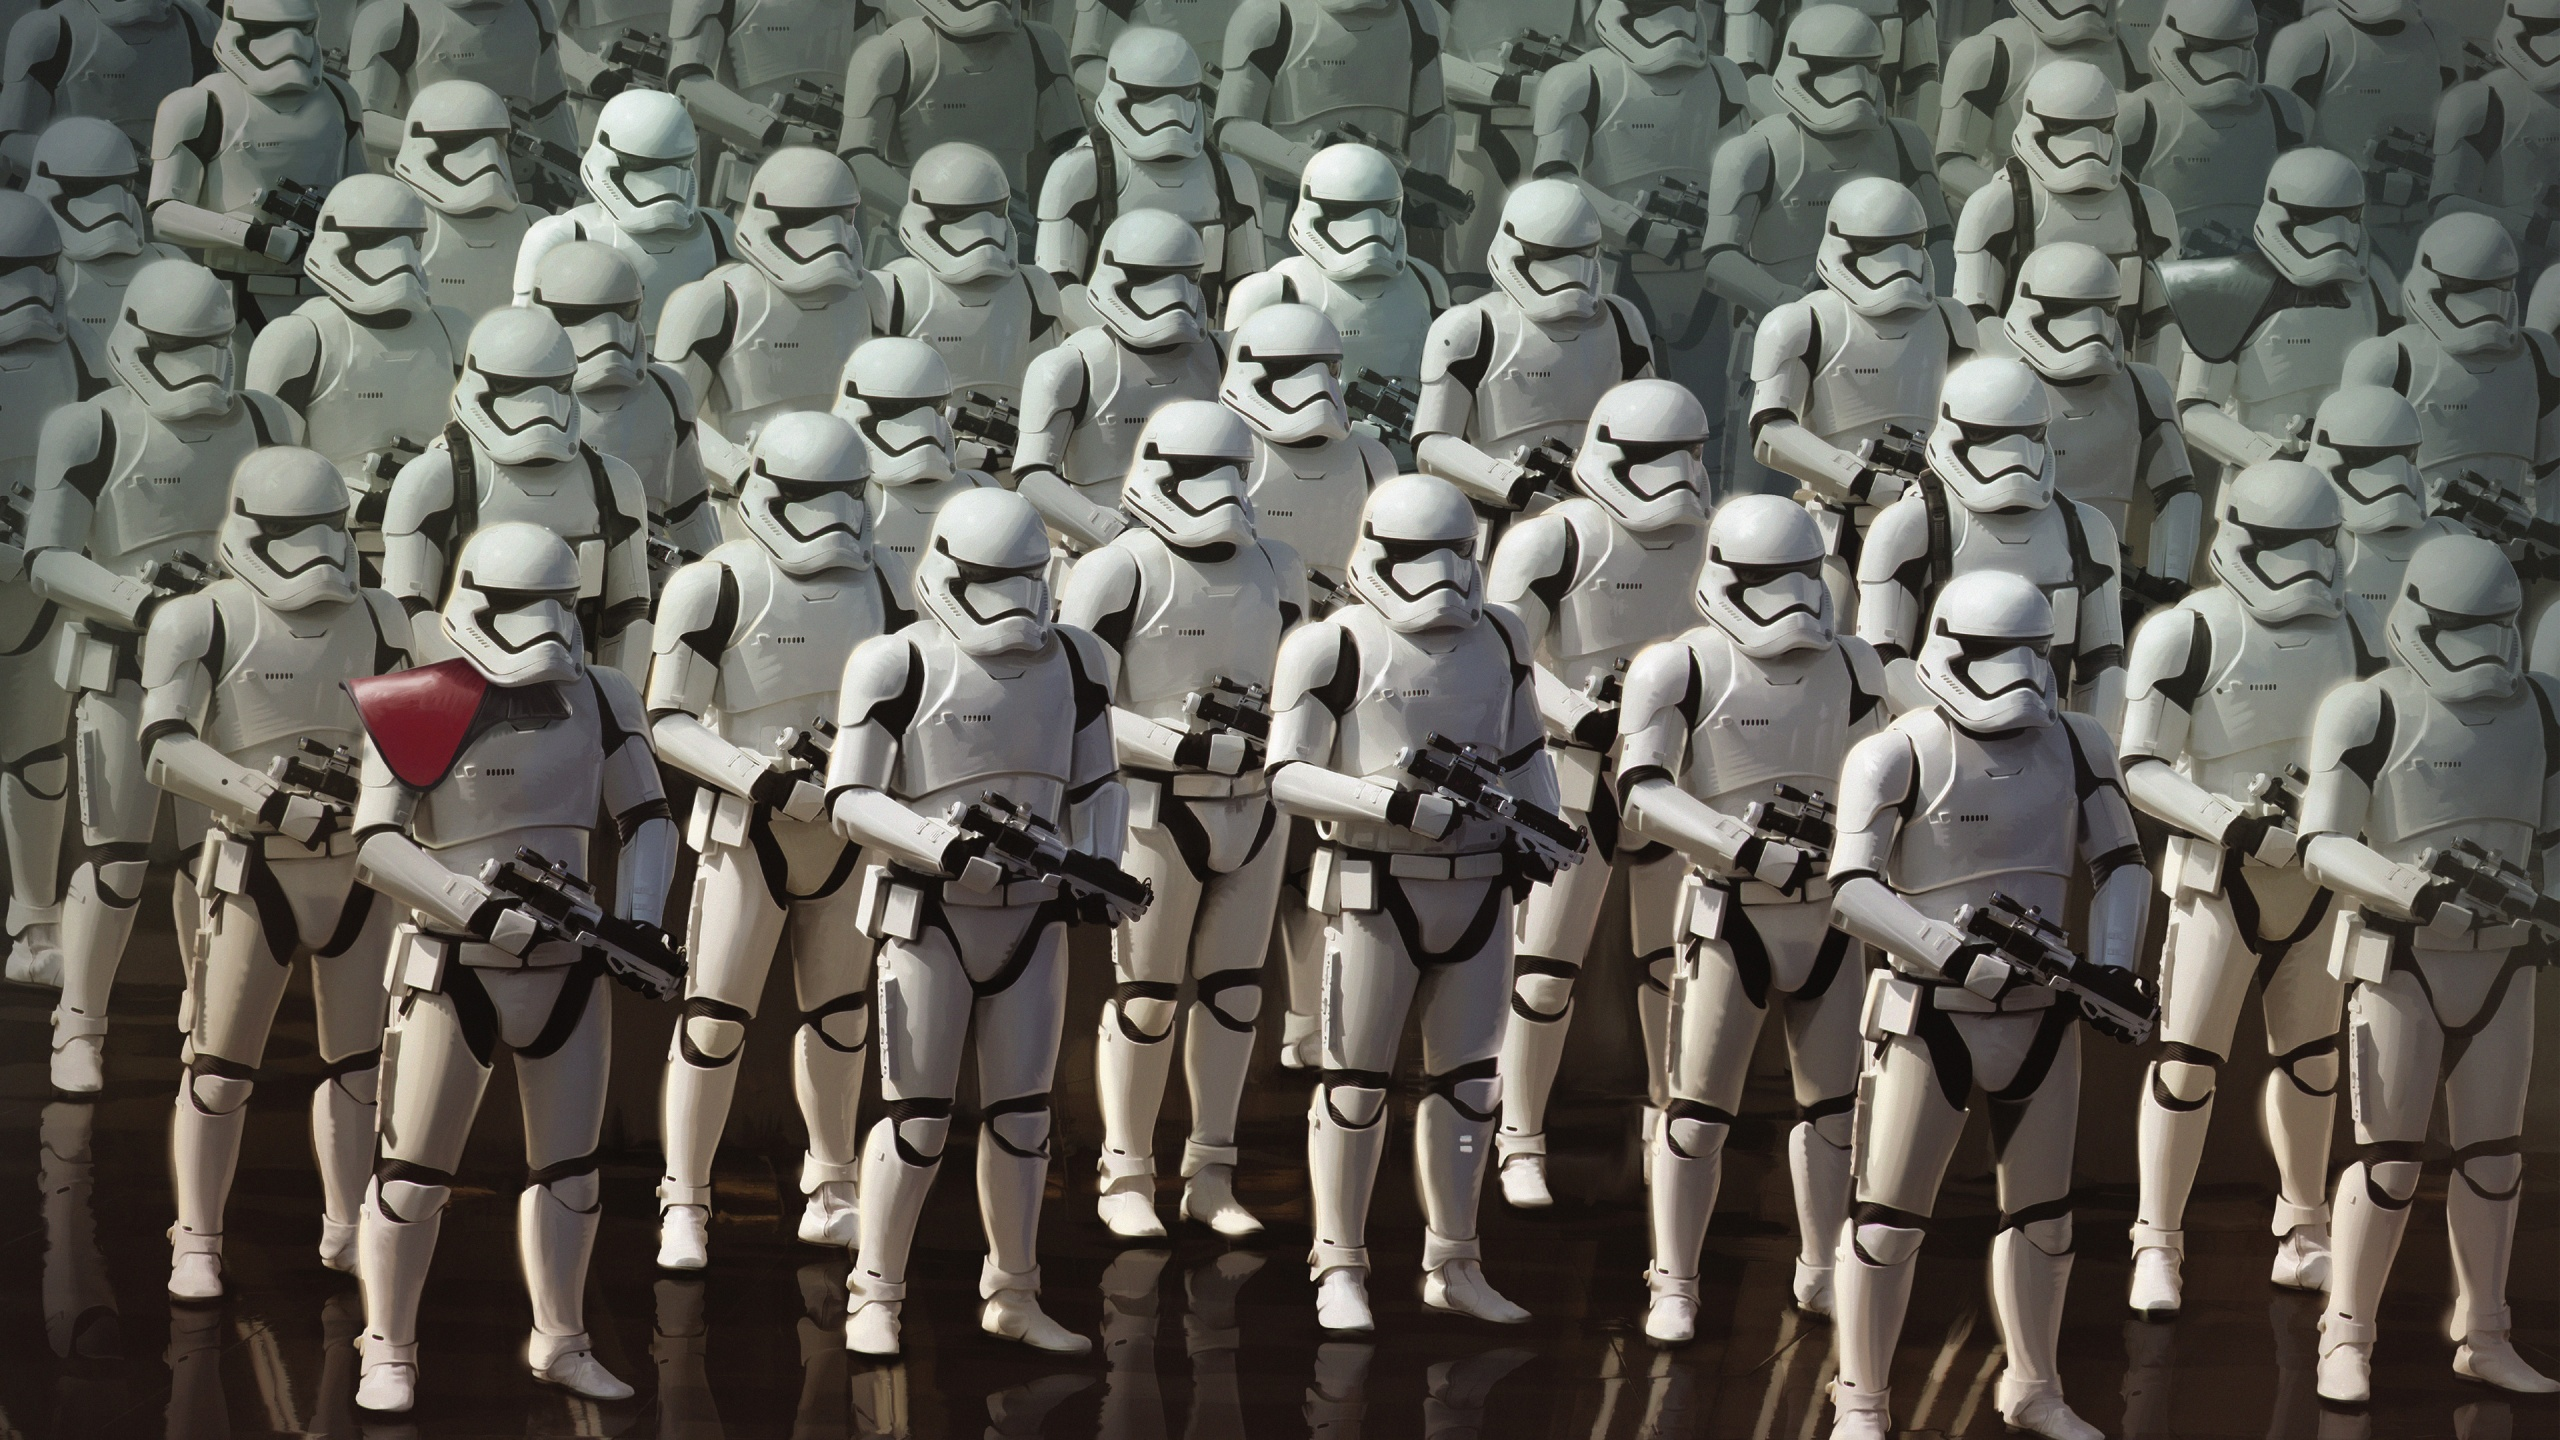 Star Wars The Force Awakens Stormtroopers Wallpapers In Jpg Format For Free Download